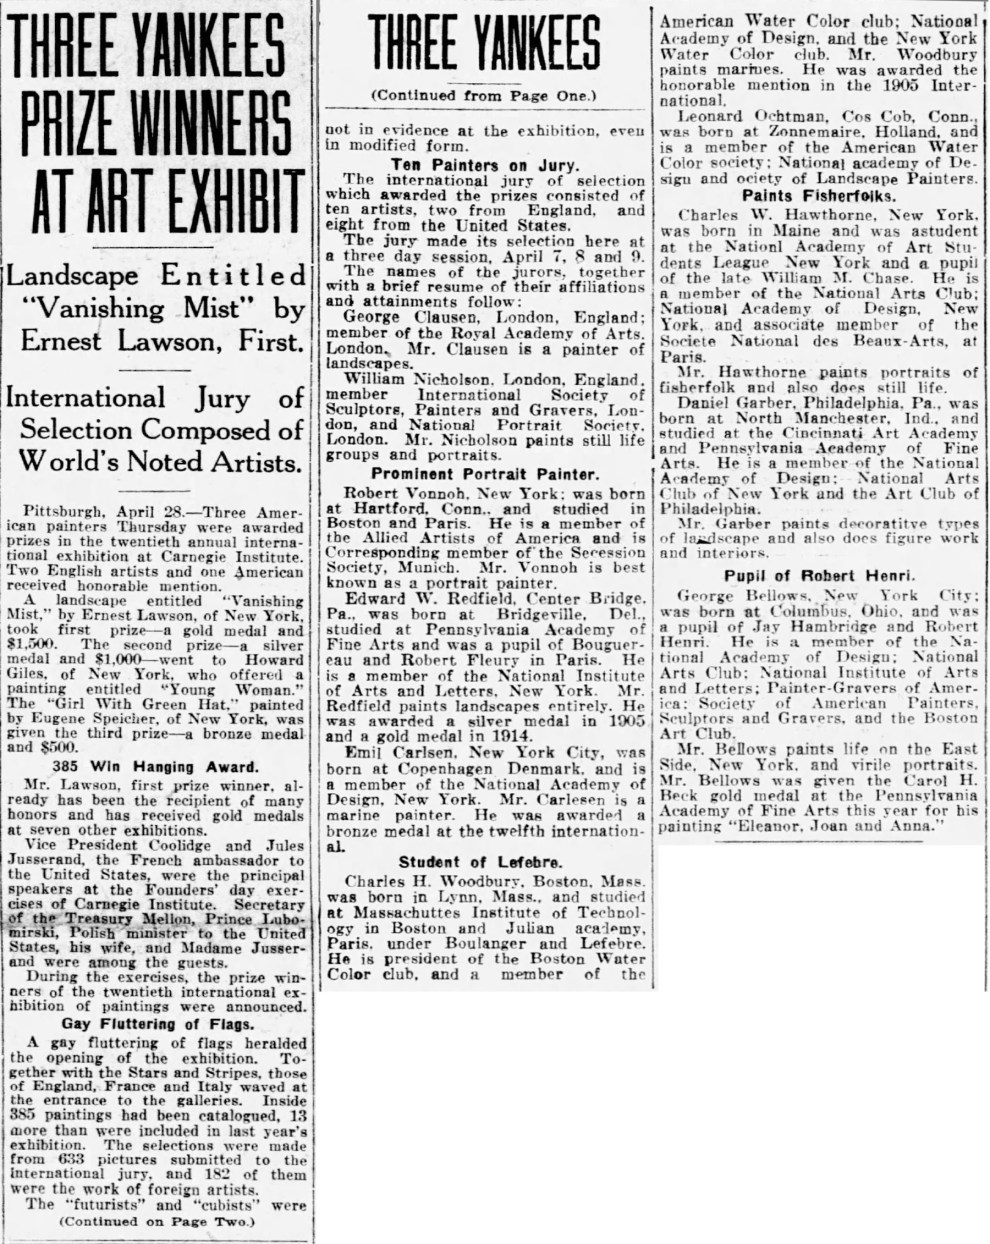 "Great Falls Tribune, Great Falls, MT, ""Three Yankees Prize Winners At Art Exhibit"", April 29, 1921, Main Edition, Page 1 & 2, not illustrated."